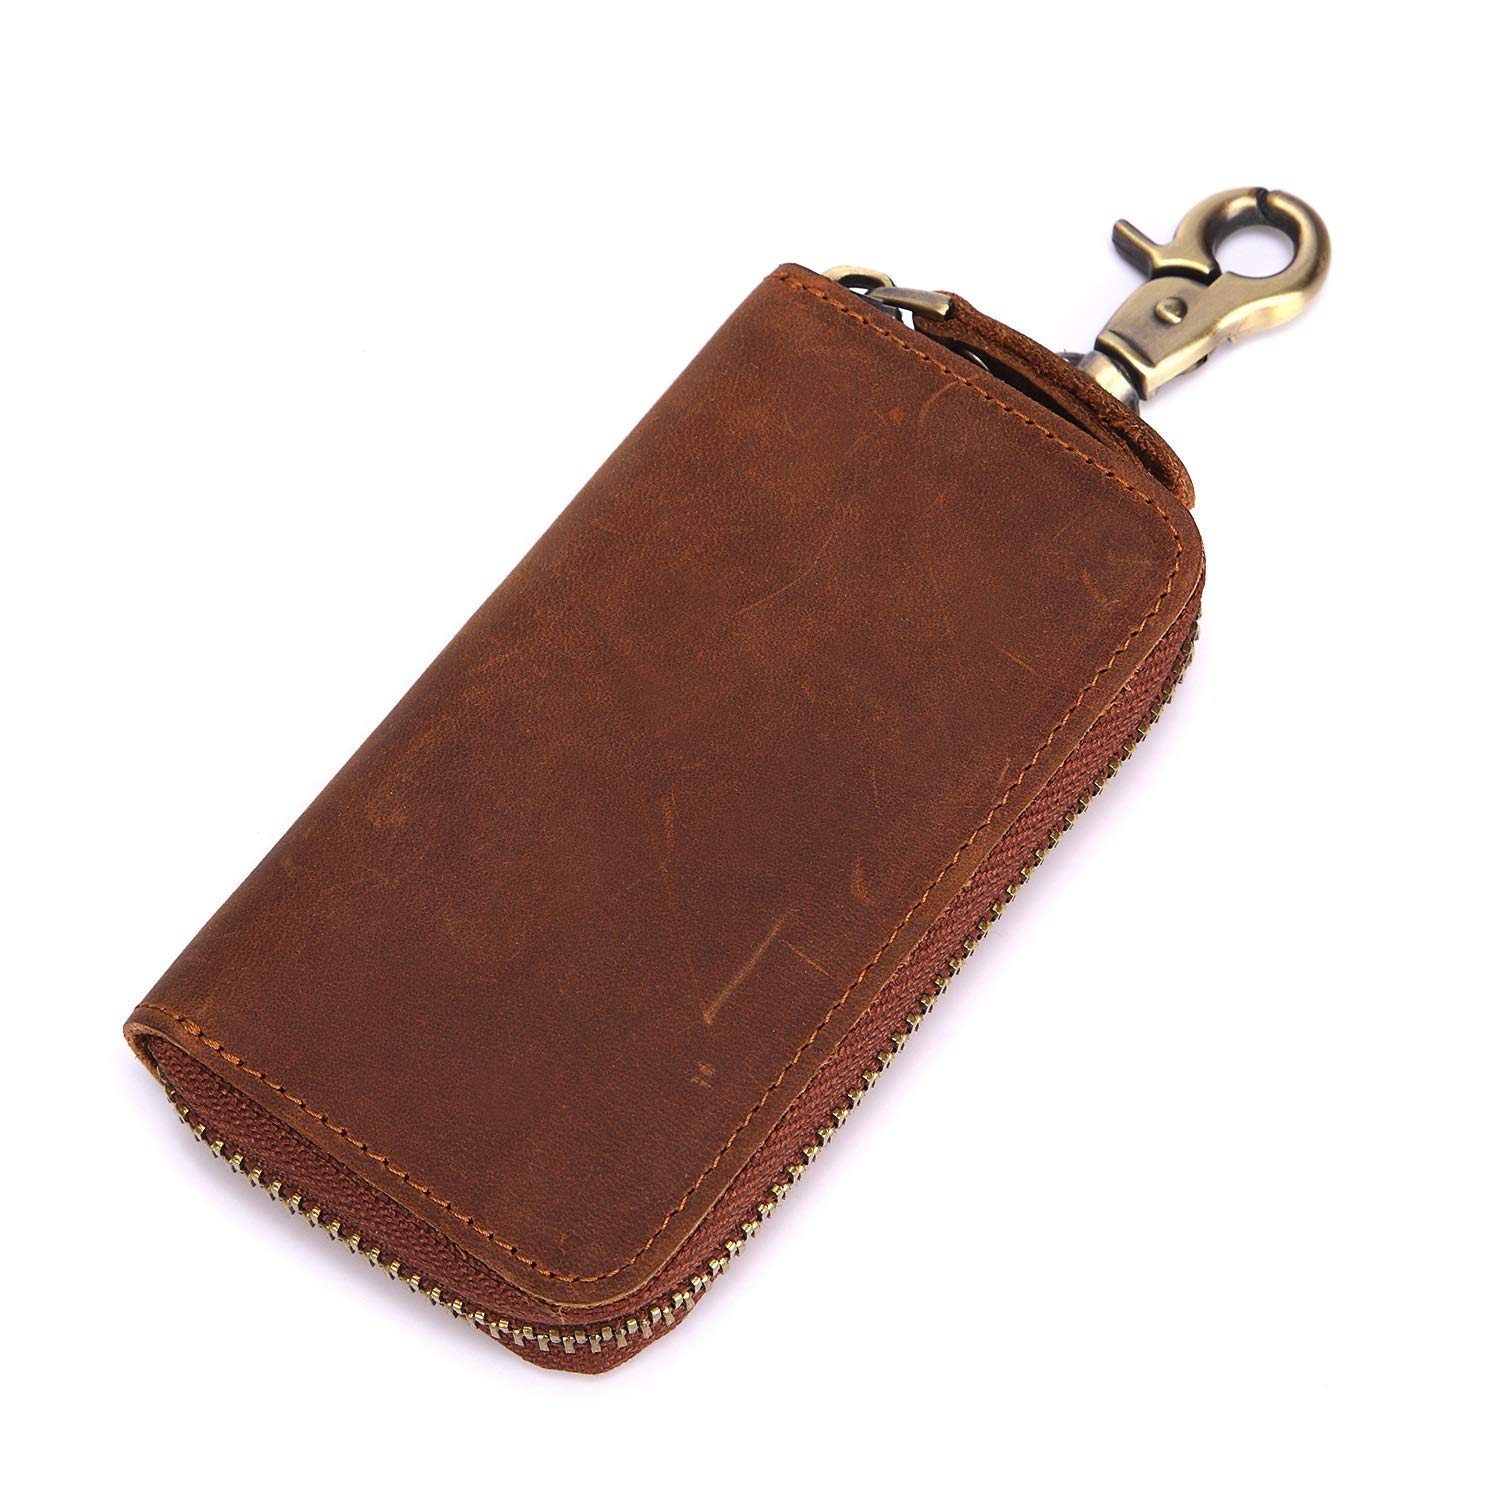 Color : Brown, Size : S DAYIYANG Special Design 2018 New Hanging Key Bag Leather Crazy Horse Leather Retro Small Card Bag Wallet with Leather Key Bag